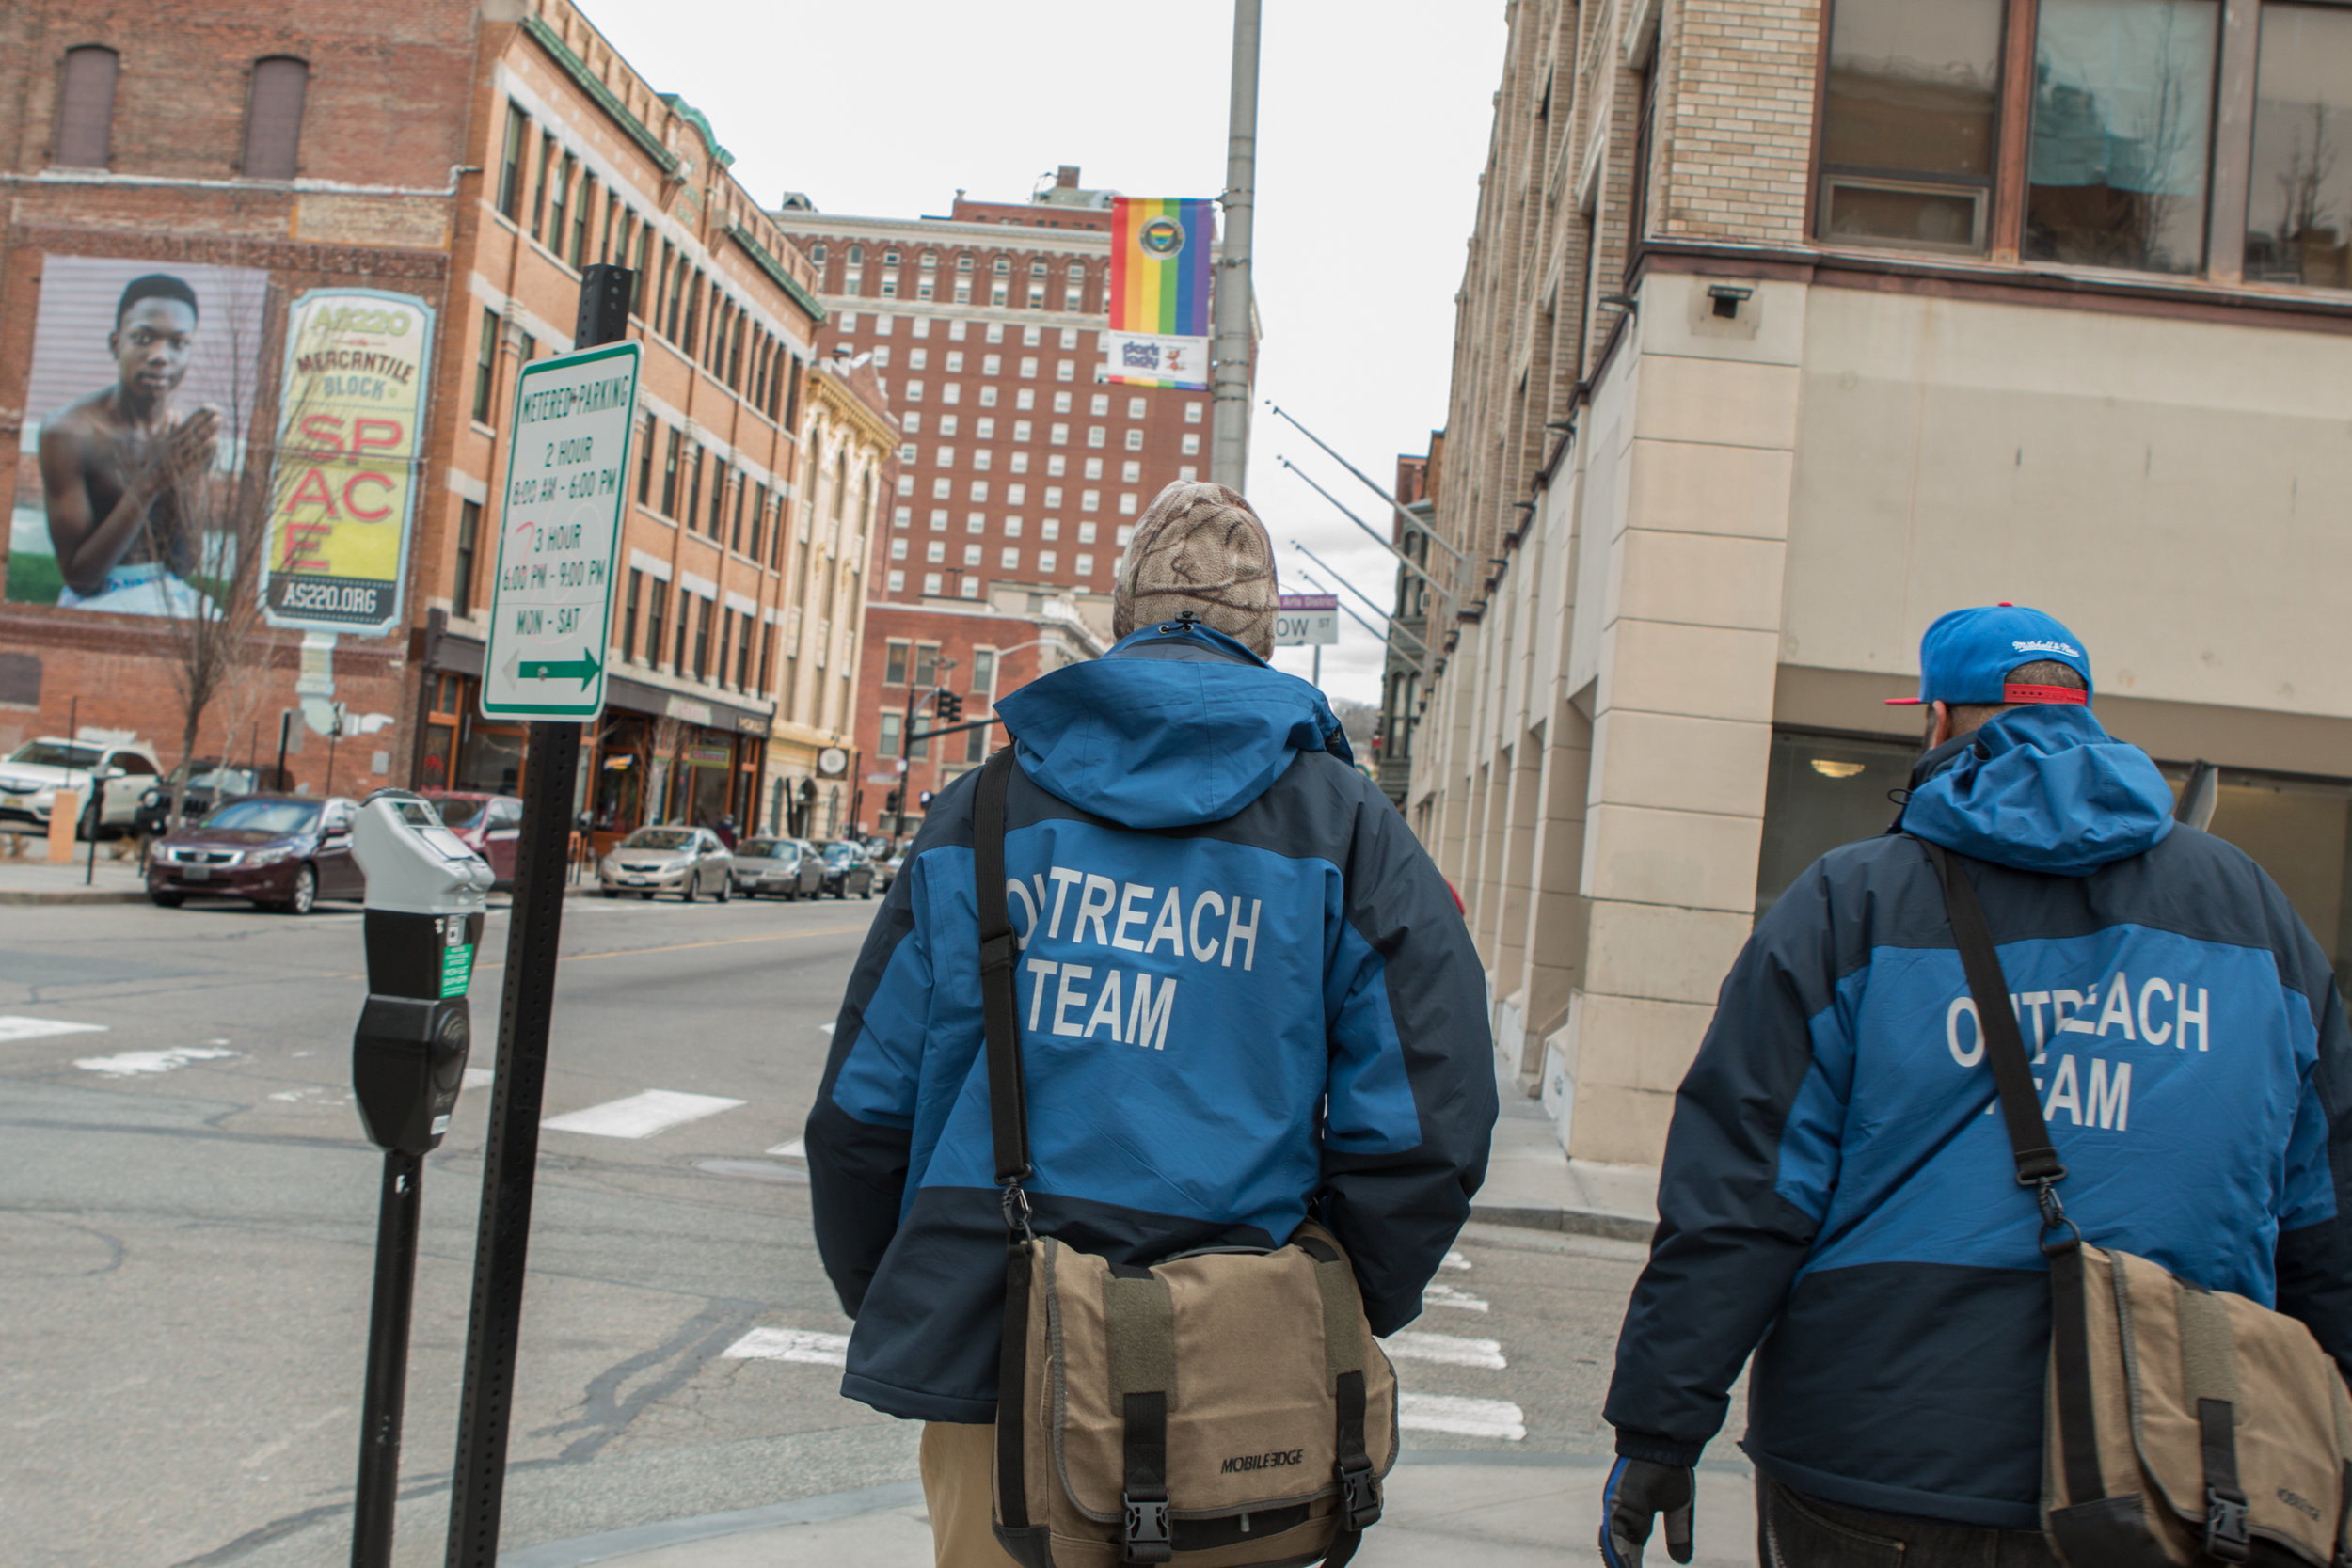 Community foundations fund front-line efforts like an outreach team in Providence, R.I., that works to connect homeless people in the city to critical social services. Photo courtesy of the Rhode Island Foundation.